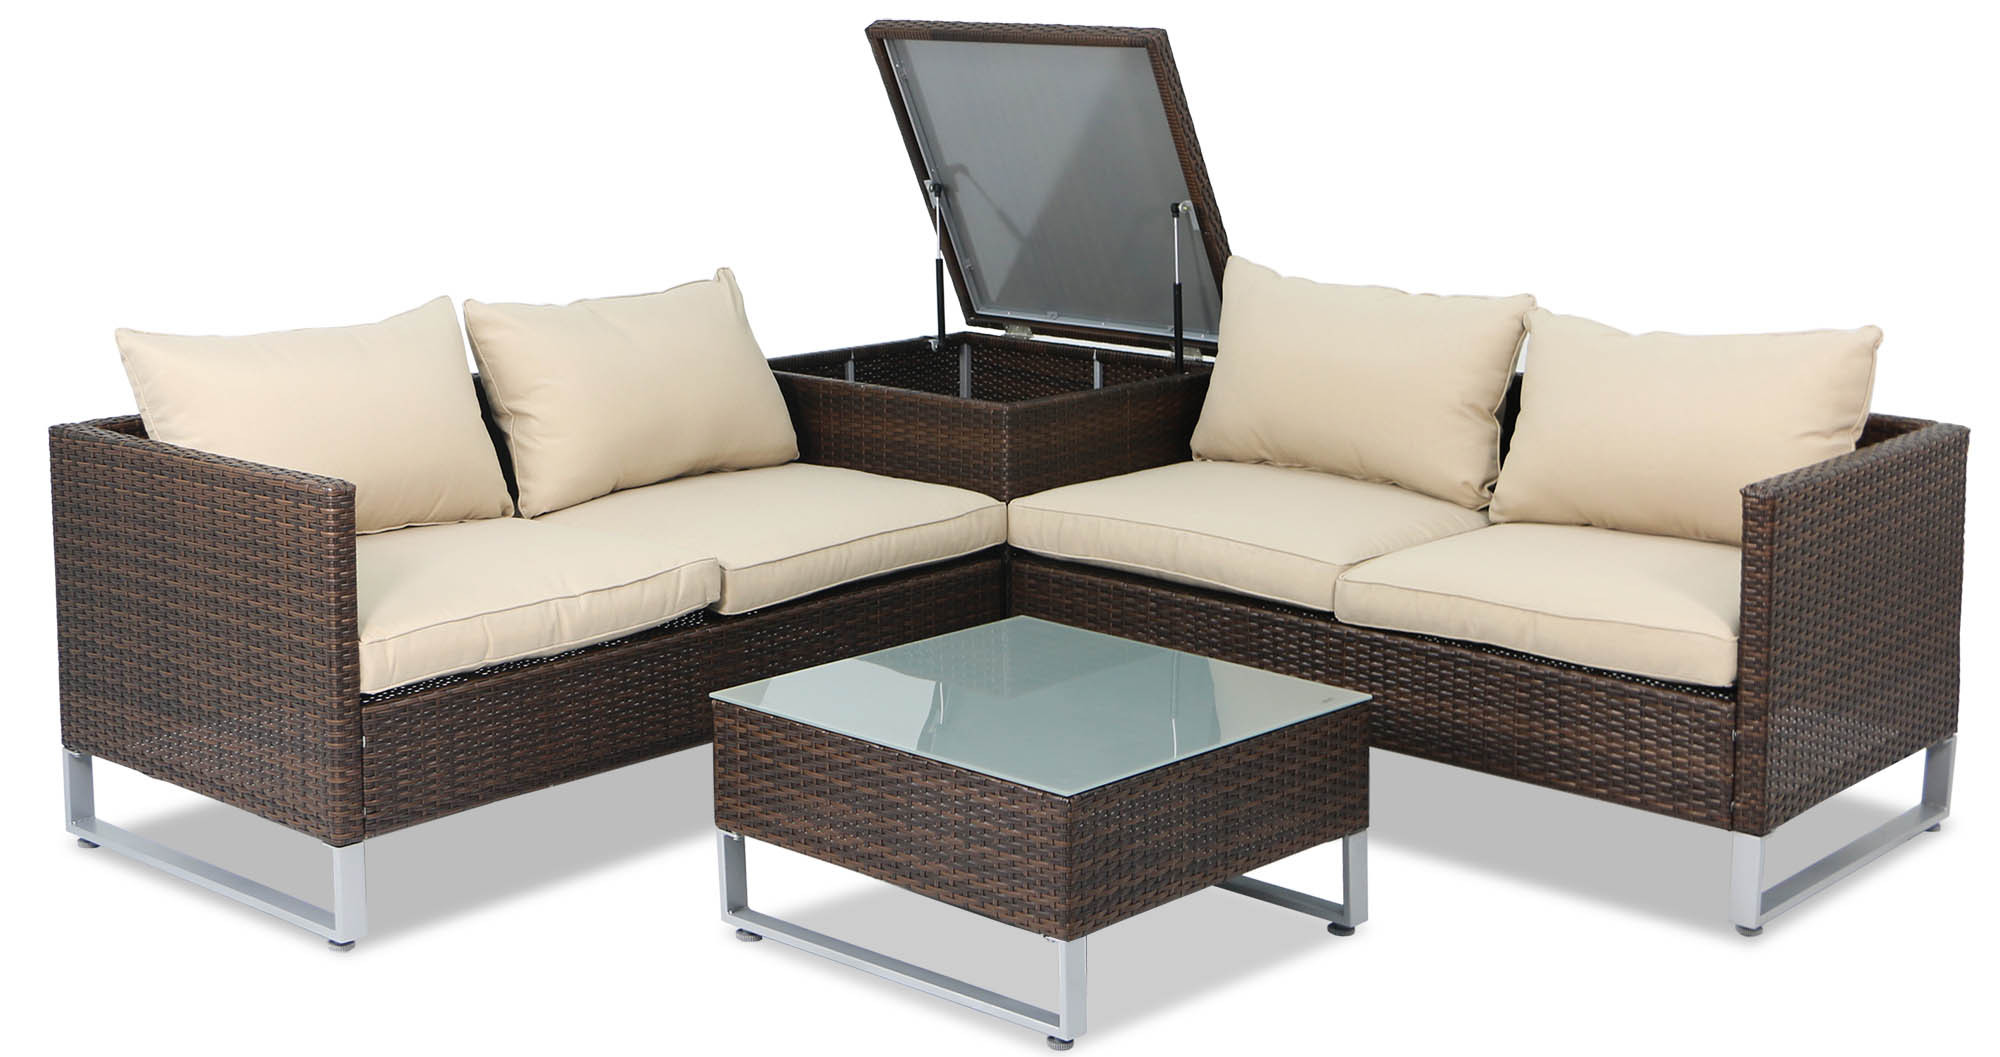 Outdoor Sofa Rattan Royal Synthetic Rattan Outdoor Sofa Set With Storage Box Brown